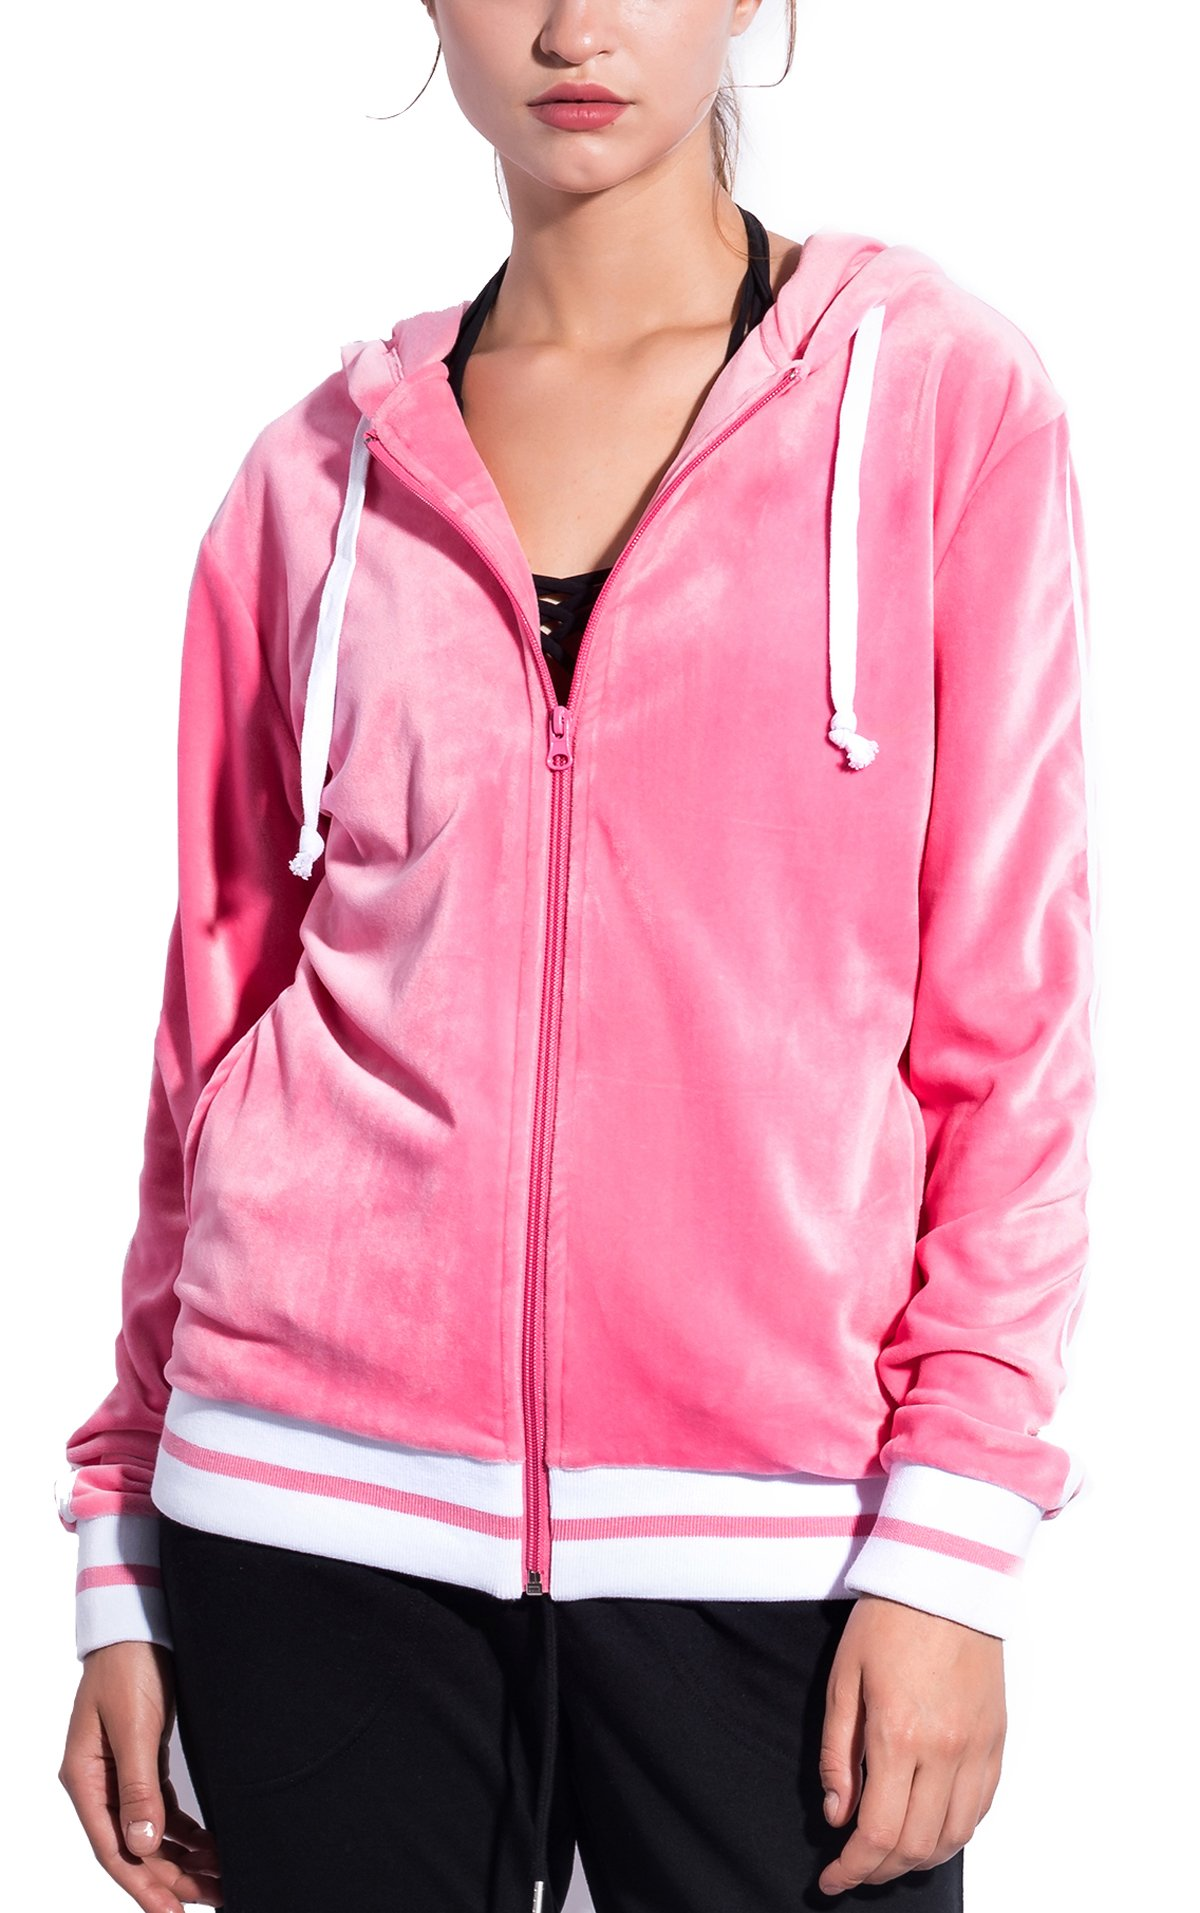 SPECIAL MAGIC Women's Ultra Soft Striped Velvet Zip up Jacket Hoodie with Pockets Pink L